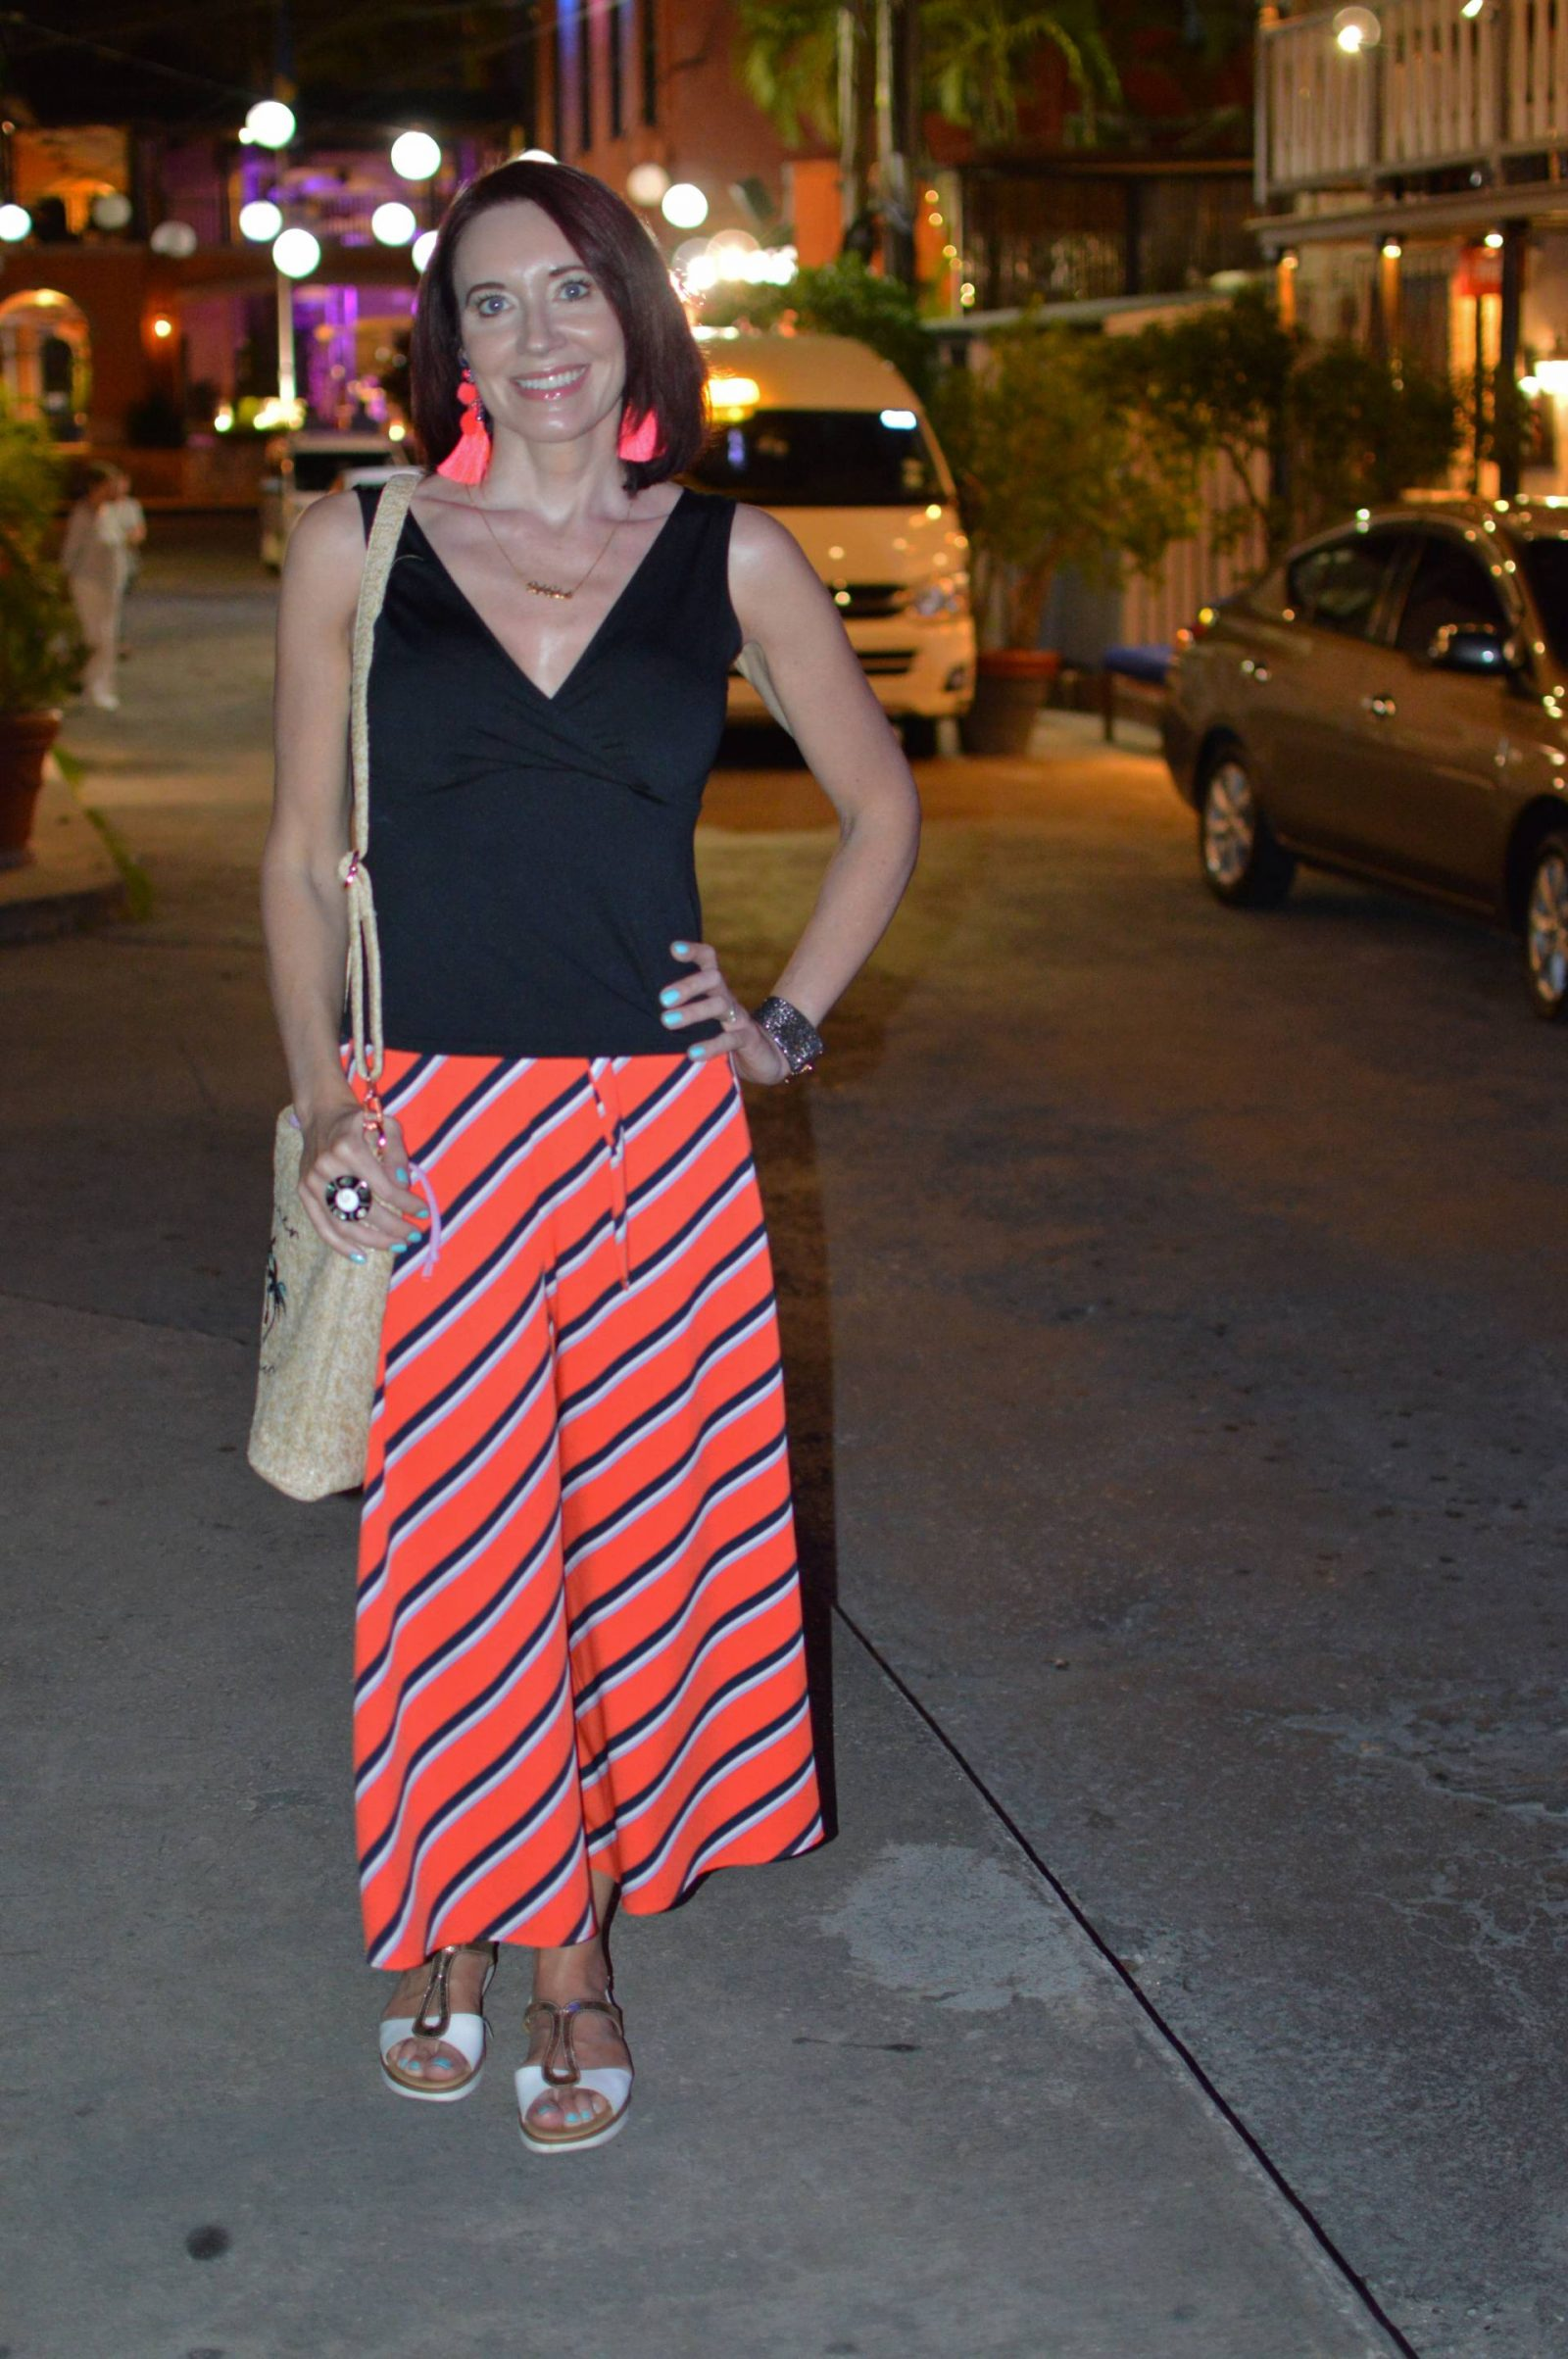 Striped culottes with a simple black vest